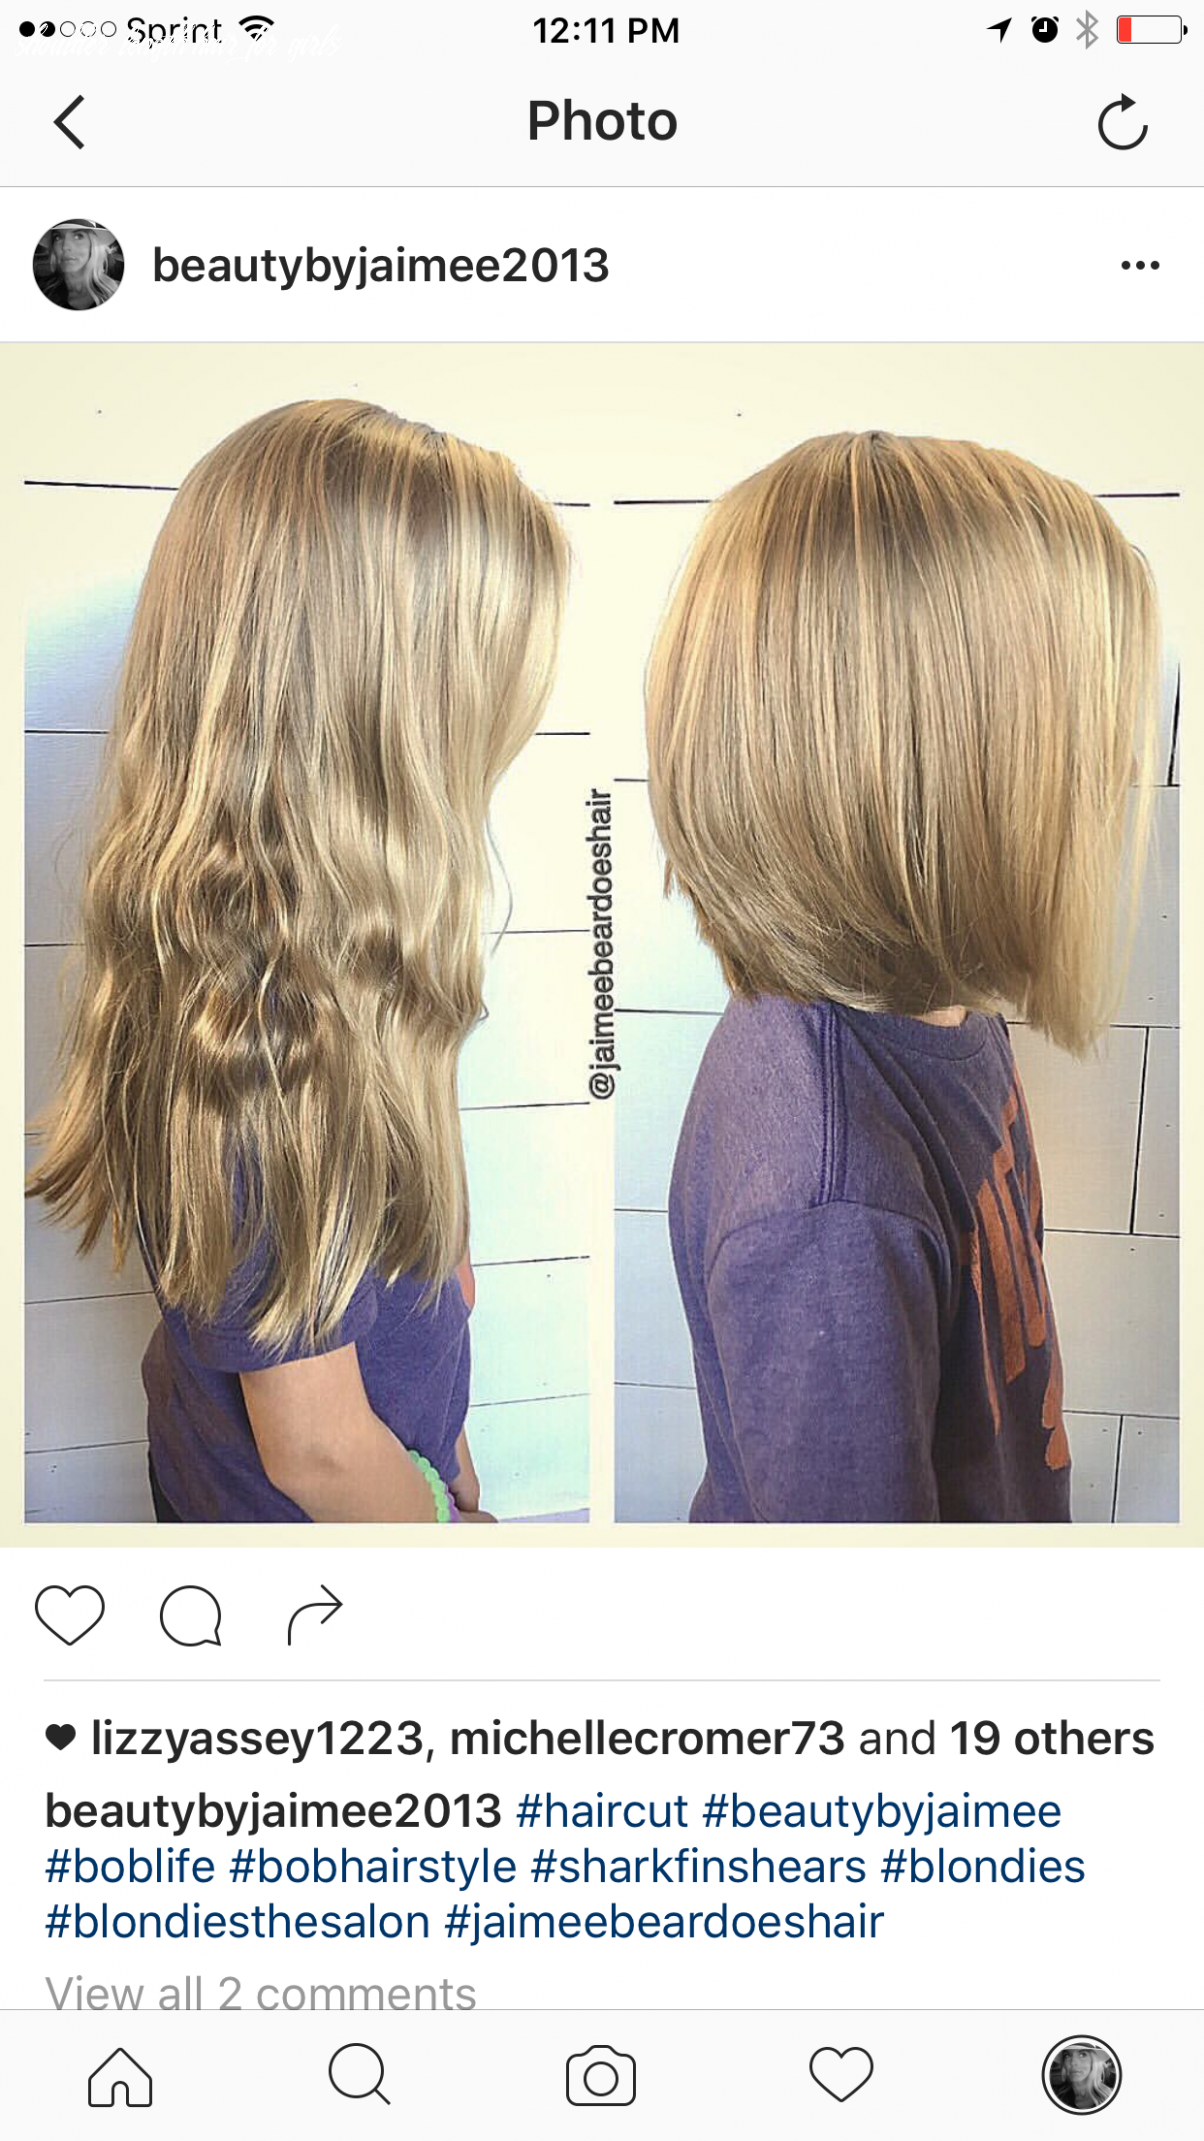 Little girls haircut from long locks to shoulder length bob (mit